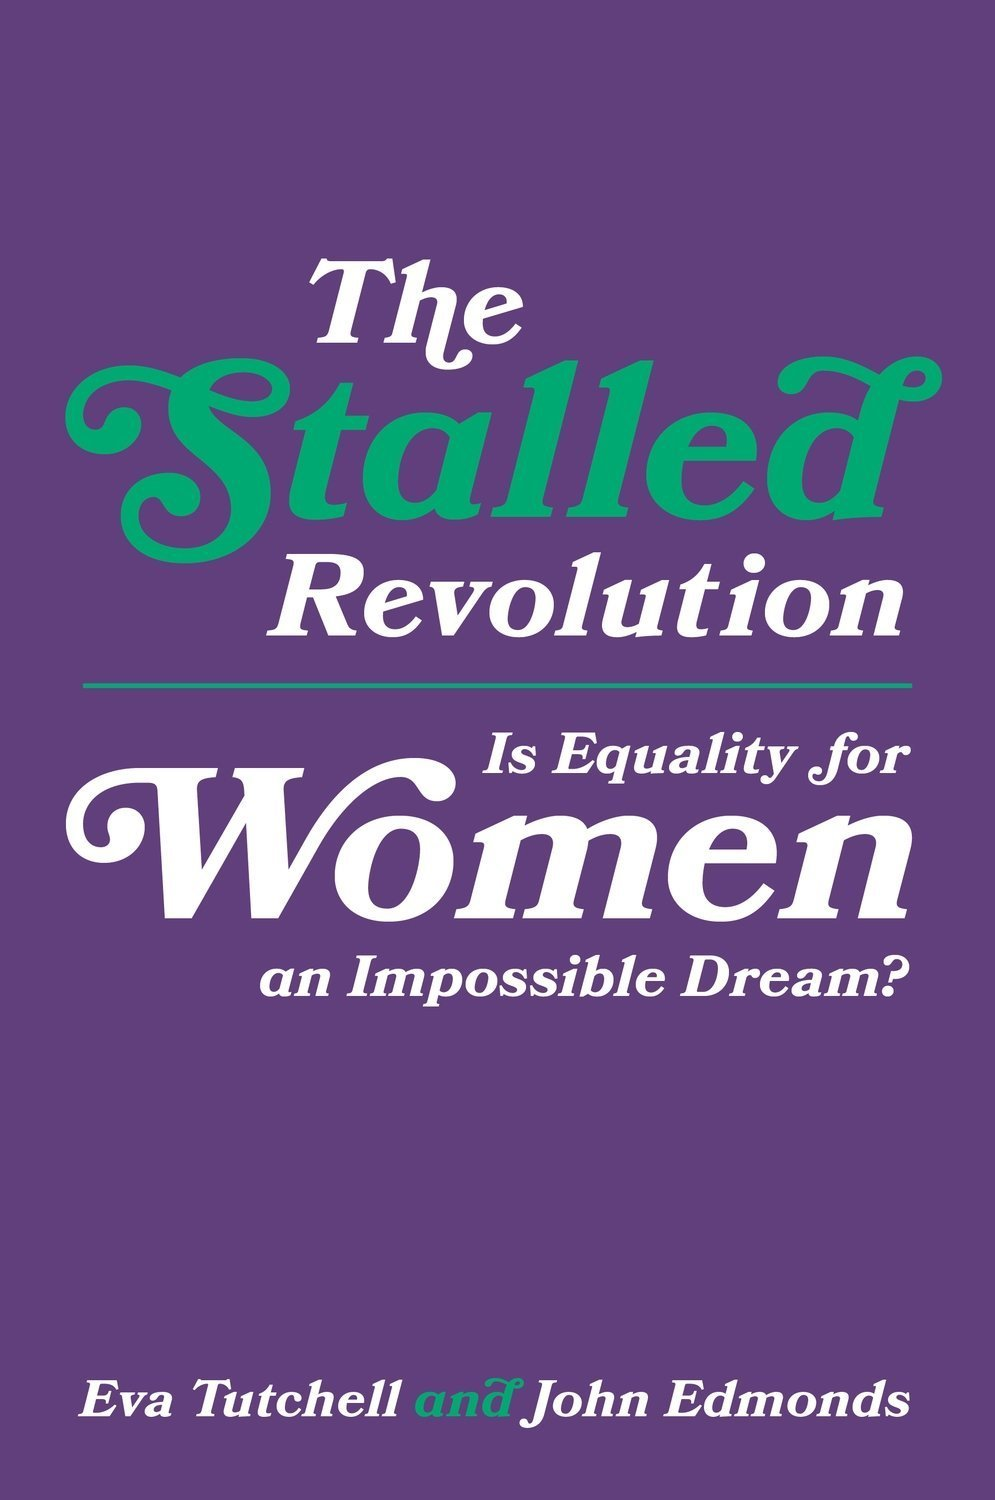 The Stalled Revolution: Is Equality for Women an Impossible Dream? - Political